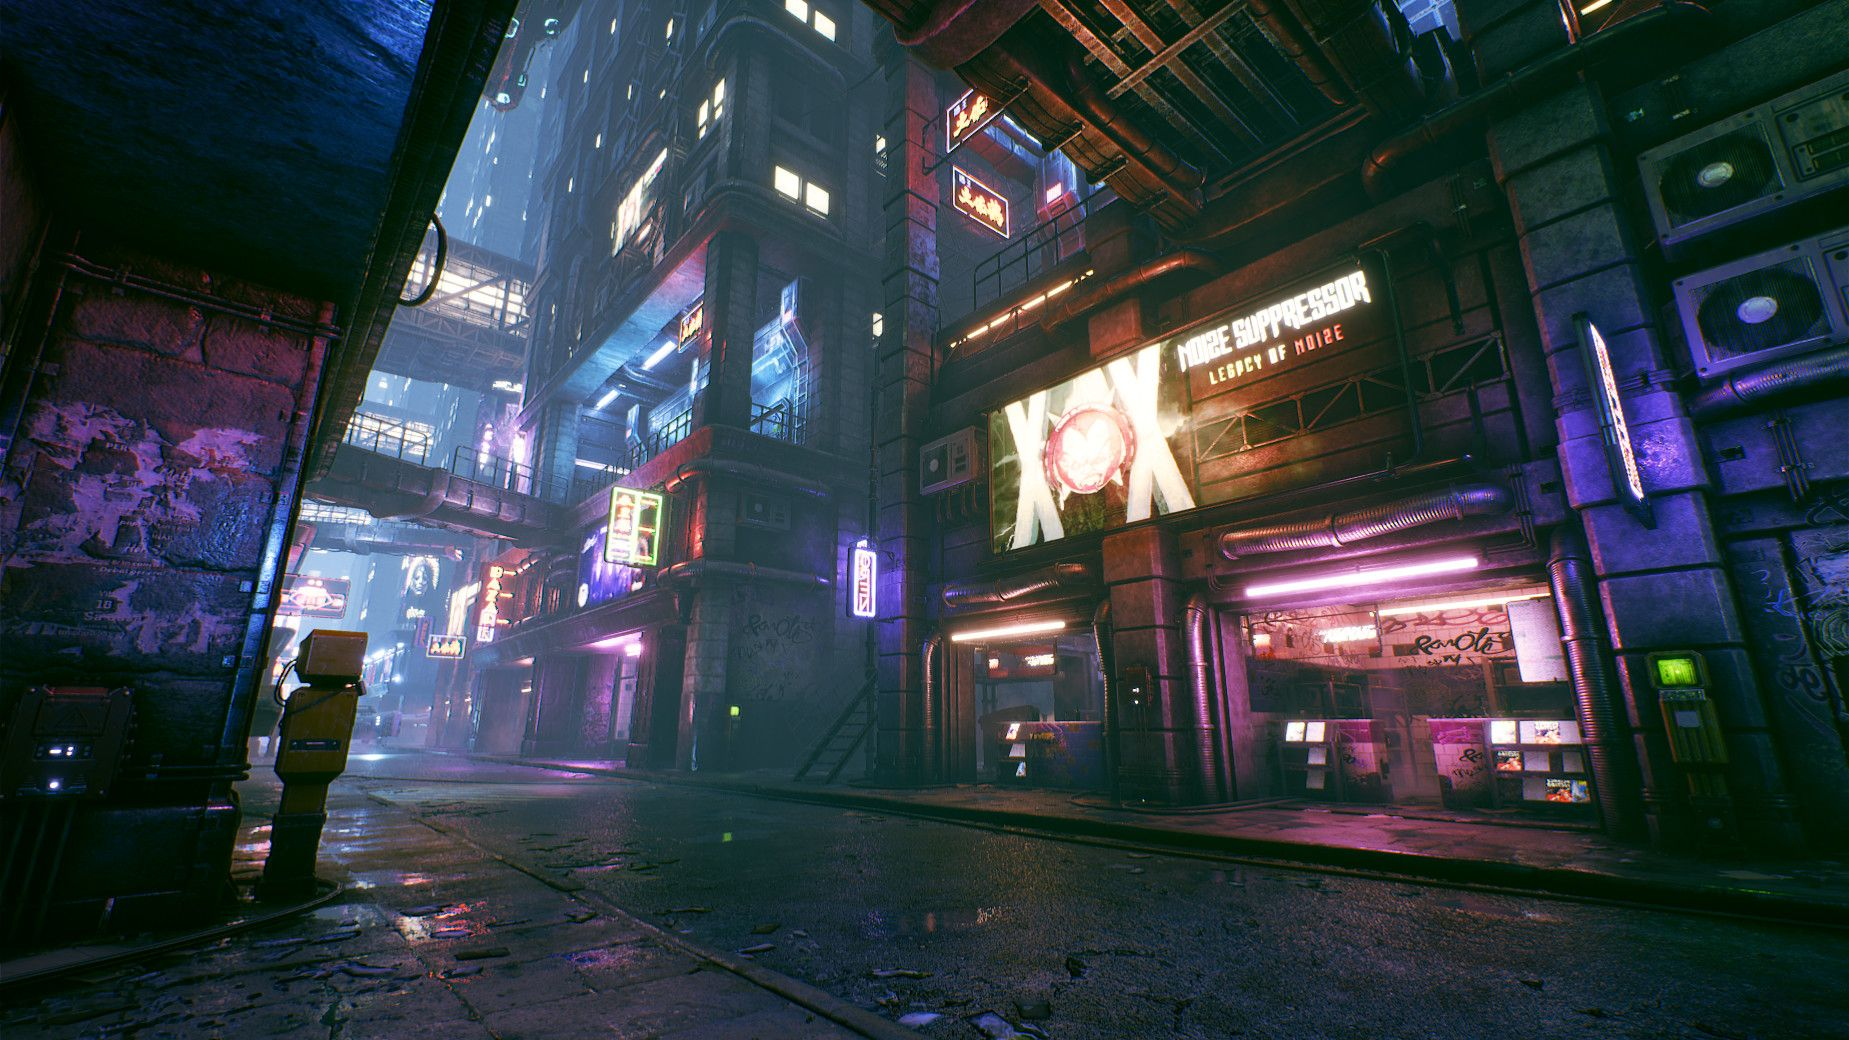 Lights And Color In Cyberpunk Environments Miasto